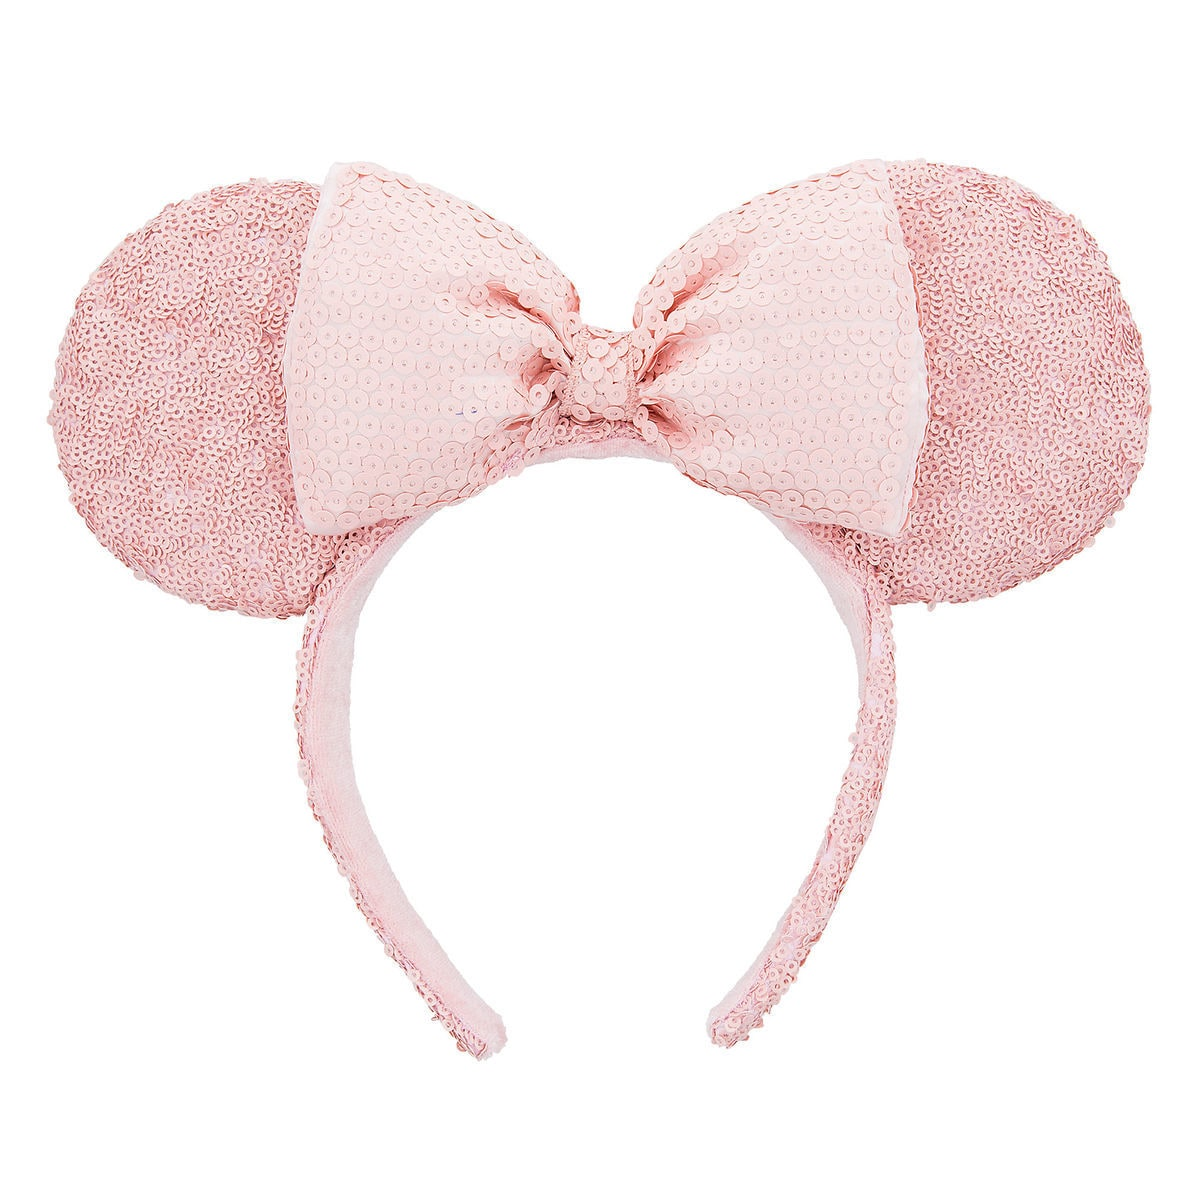 Product Image of Minnie Mouse Sequined Ear Headband - Pink # 1